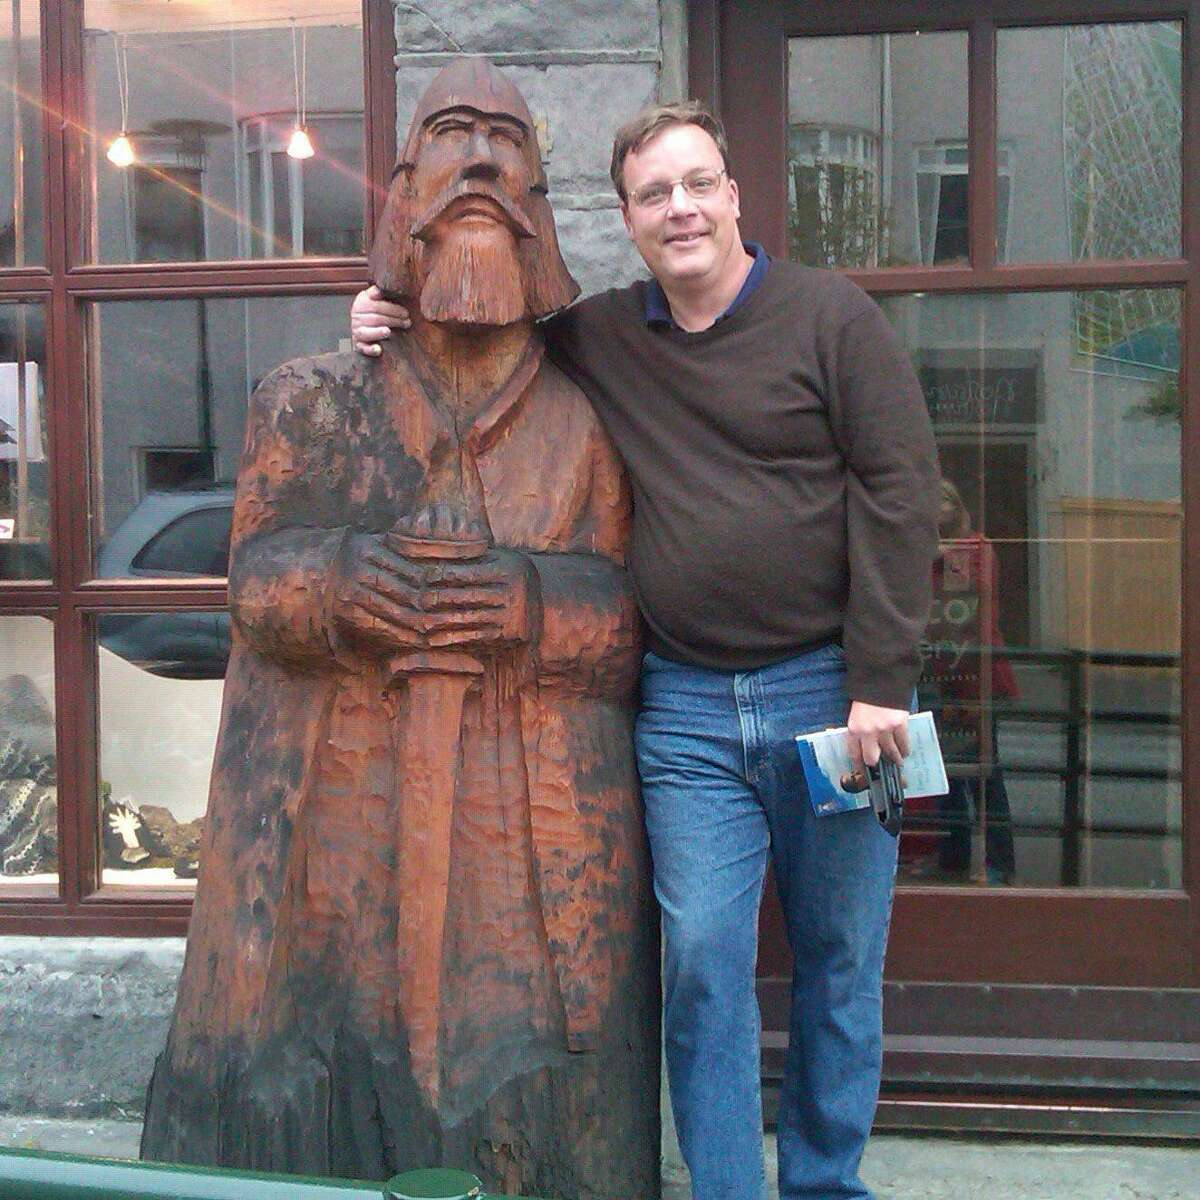 Steve Bennett insists his delivery is not as wooden as the Viking statue next to him in this recent photo taken in Iceland.